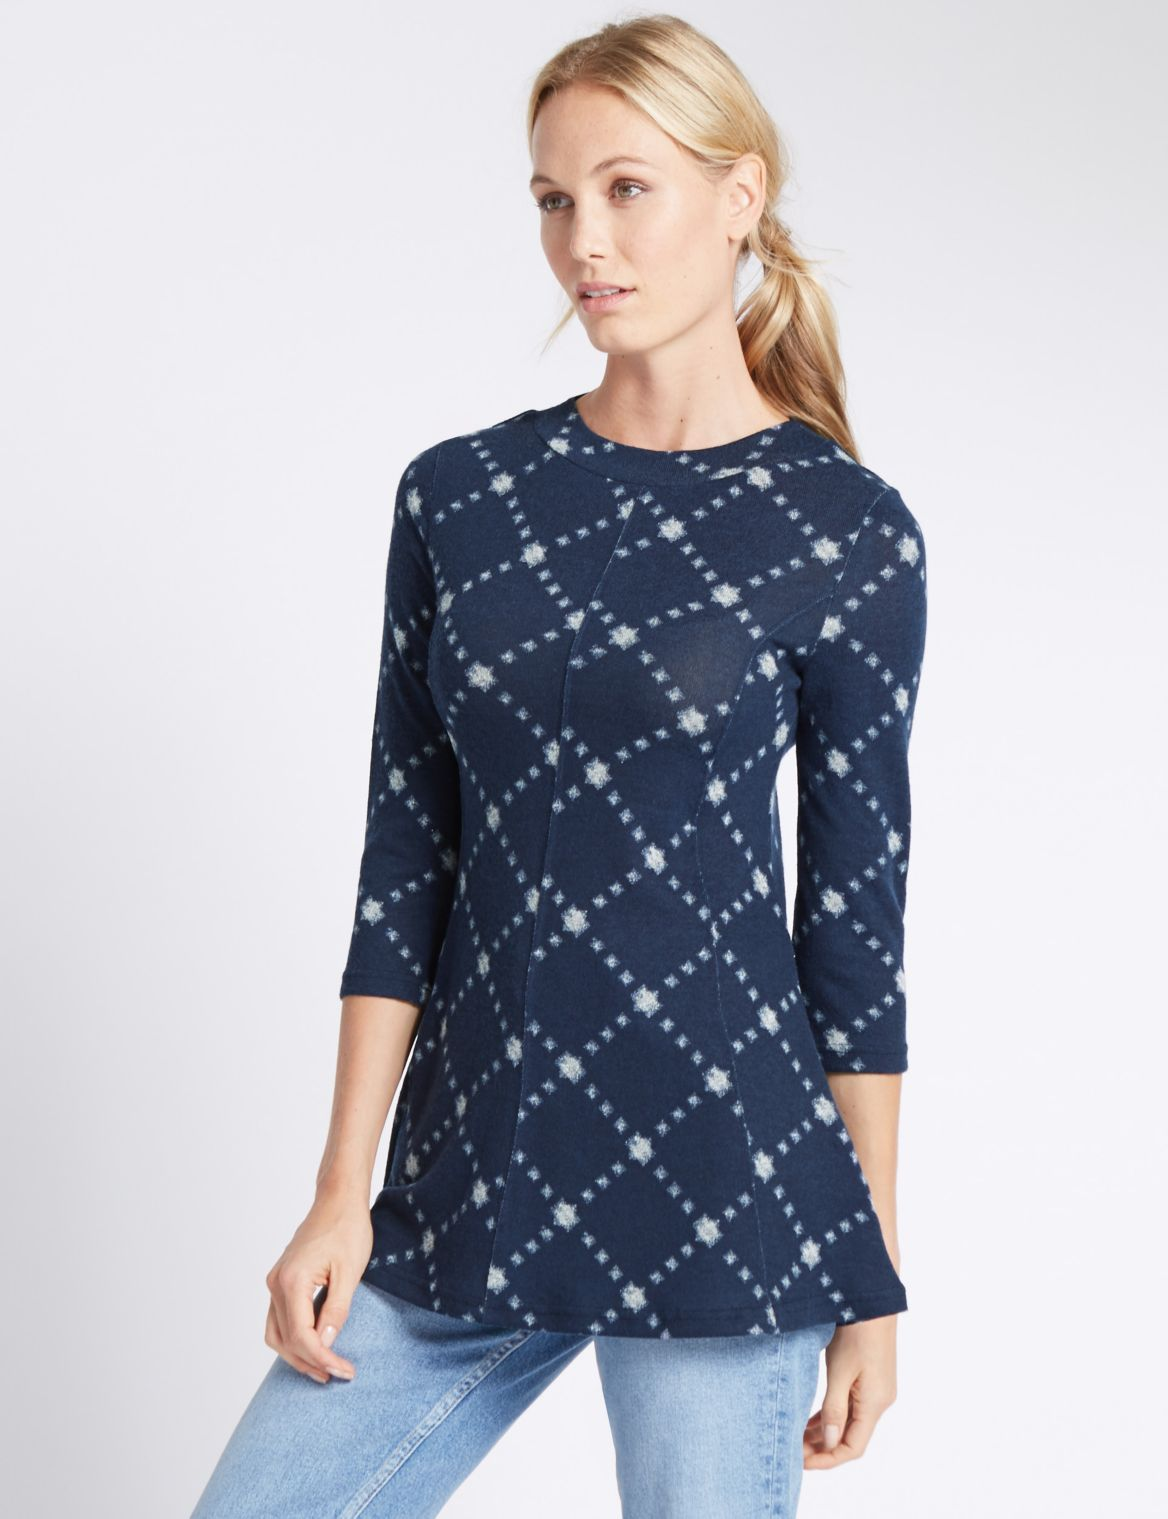 3/4 Sleeve Crew Neck Swing Tunic navy mix